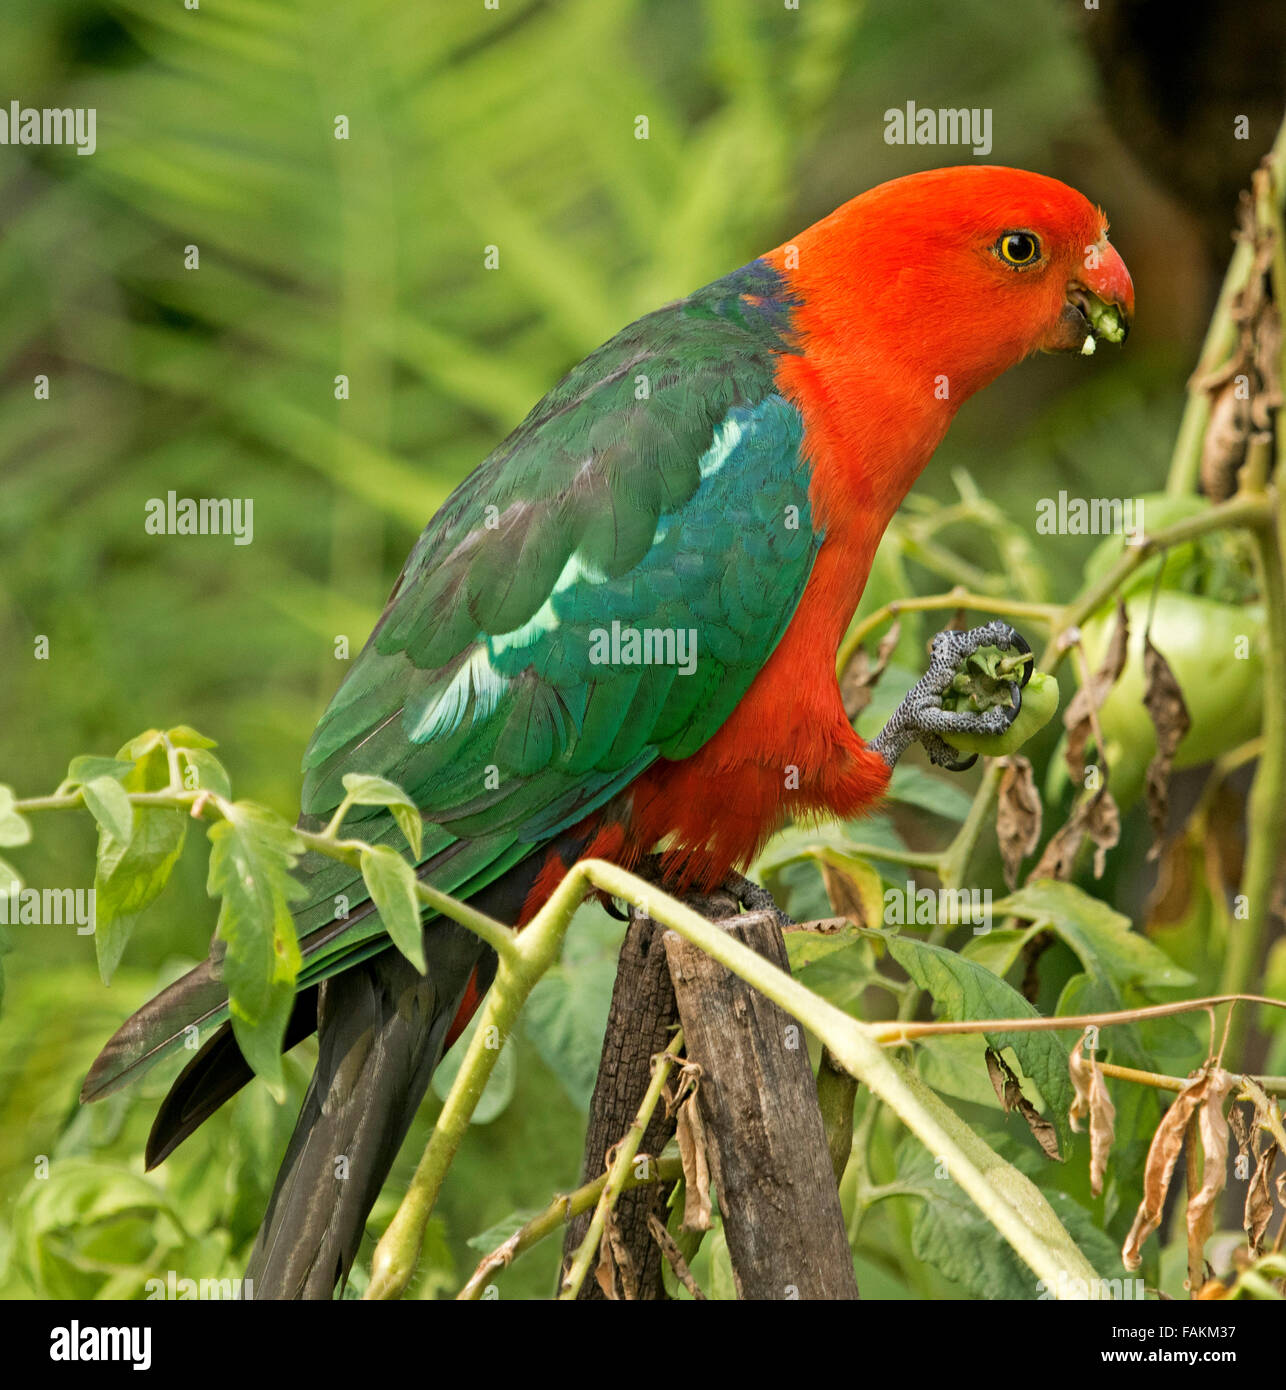 Spectacular vivid red and green male king parrot Alisterus scapularis on post eating green tomato in home garden - Stock Image